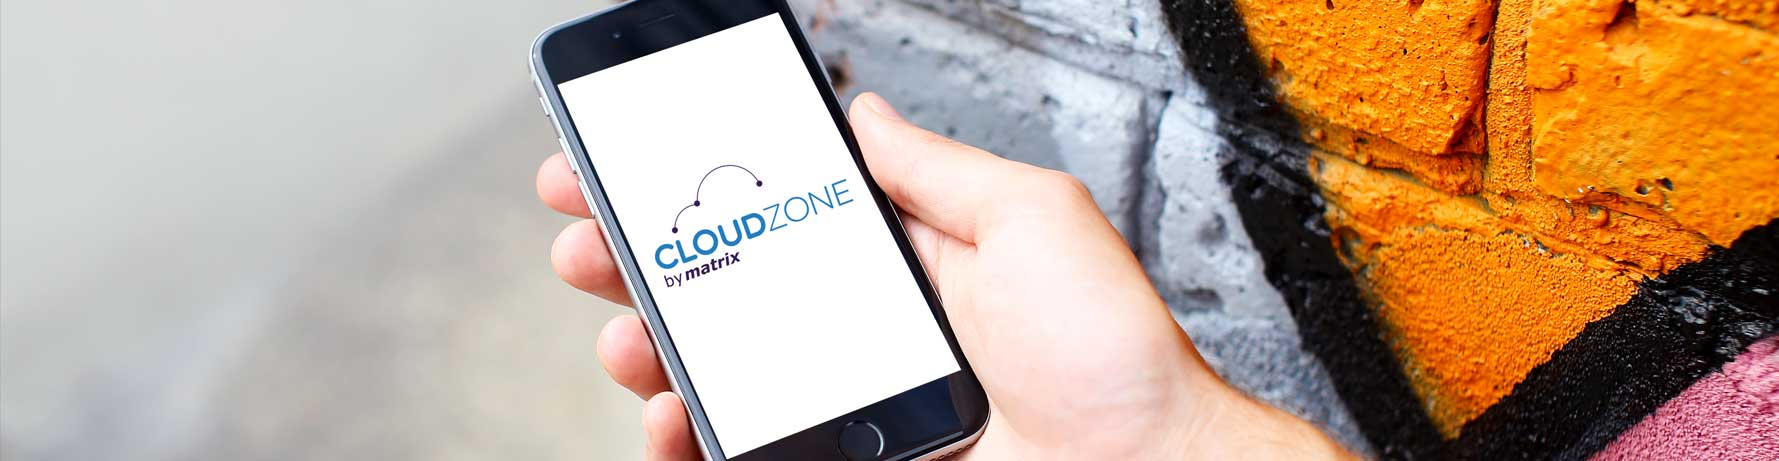 cloudzone - Web Systems Development